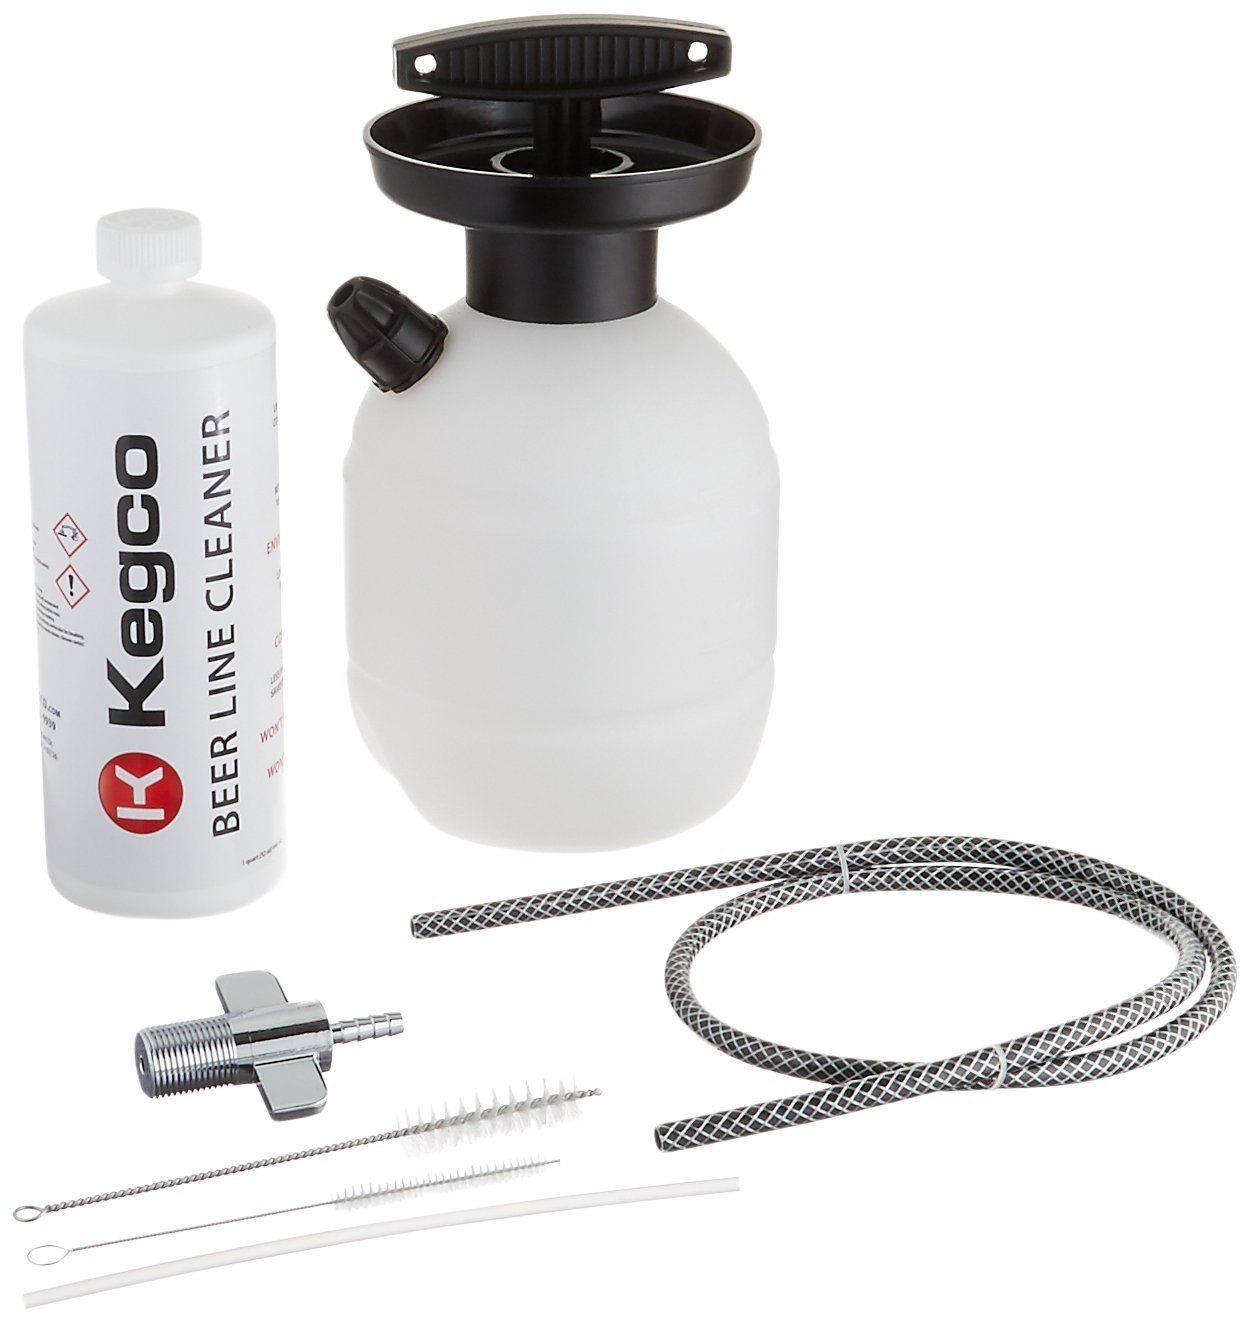 Kegco BF KPCK32 Deluxe Hand Pump Pressurized Keg Beer Cleaning Kit with 32 oz Cleaner, Black